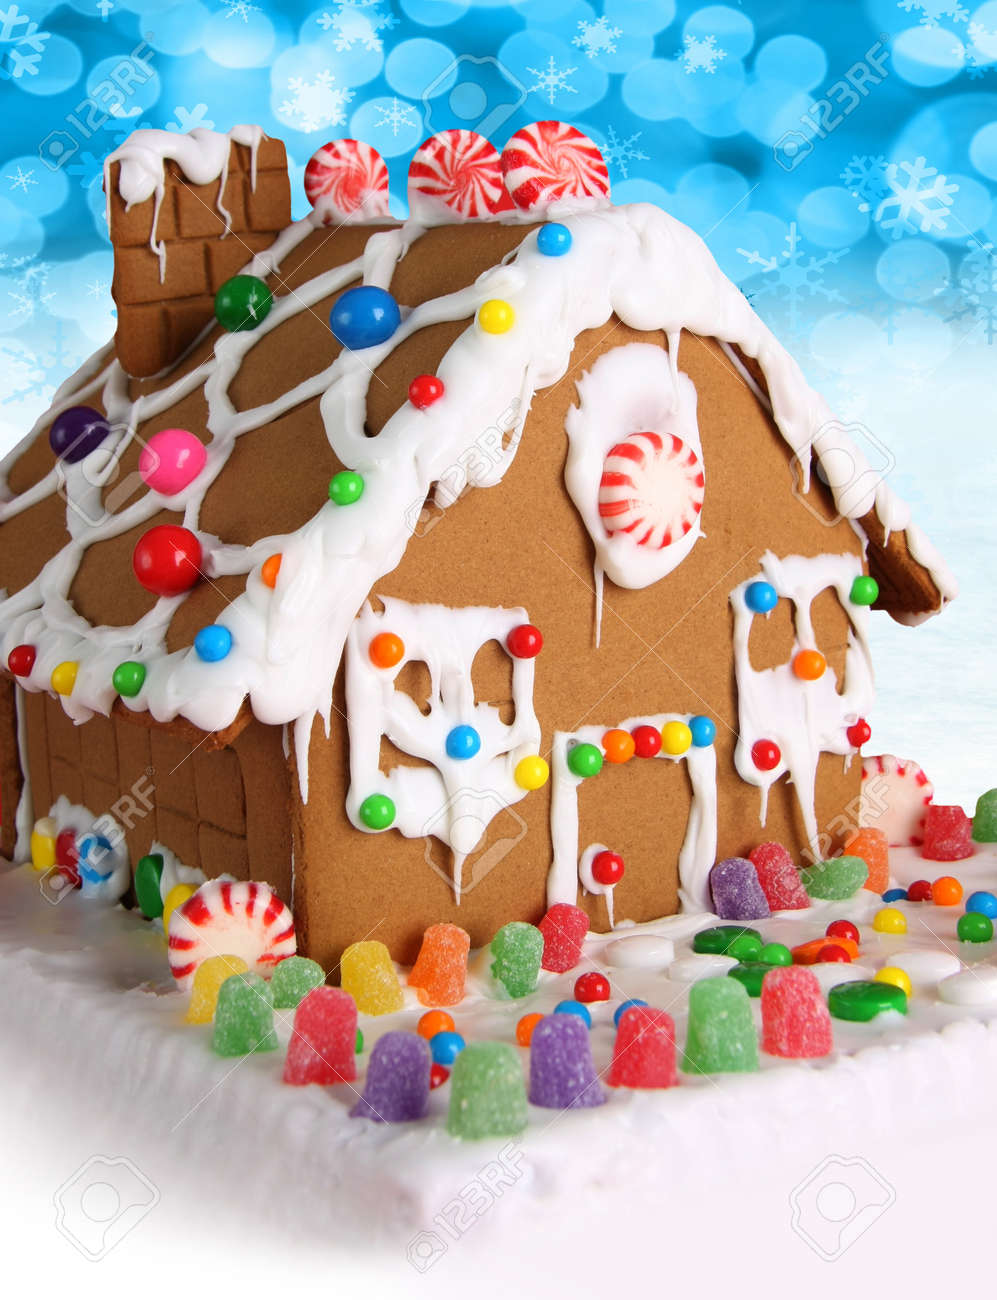 Christmas Gingerbread House.Christmas Gingerbread House With Candy